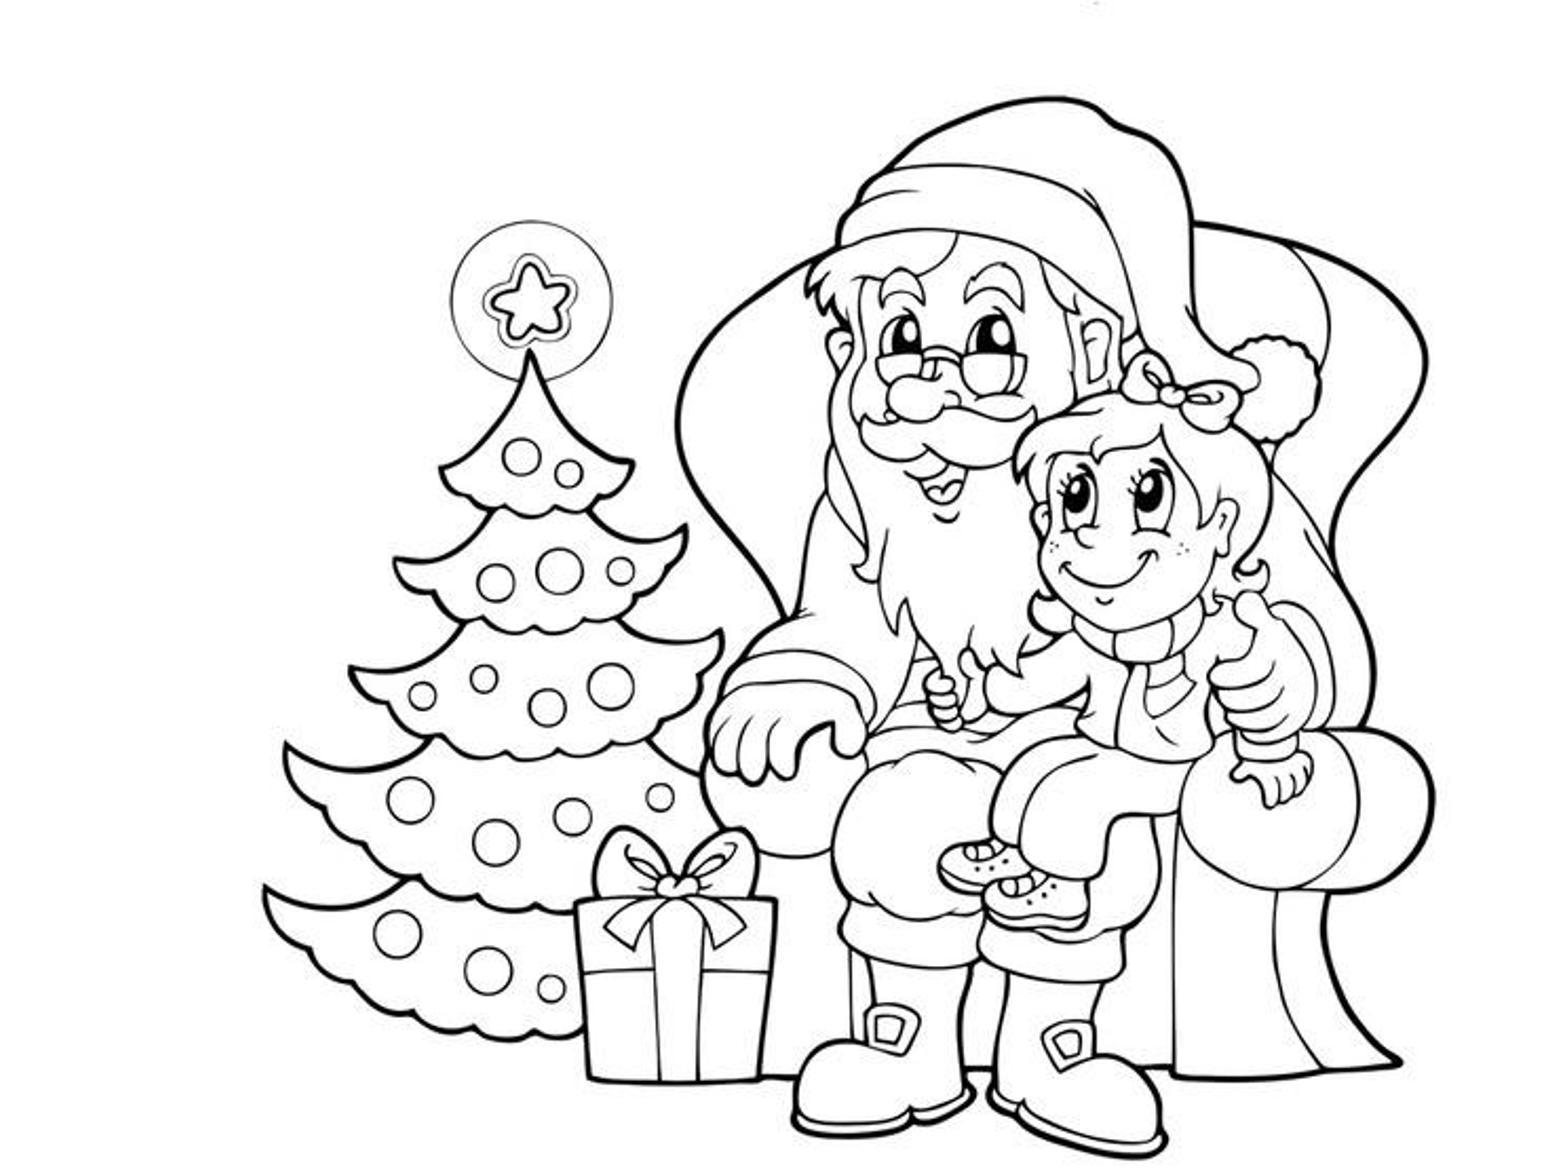 1553x1176 santa coloring pages for kids - Santa Claus Coloring Printables